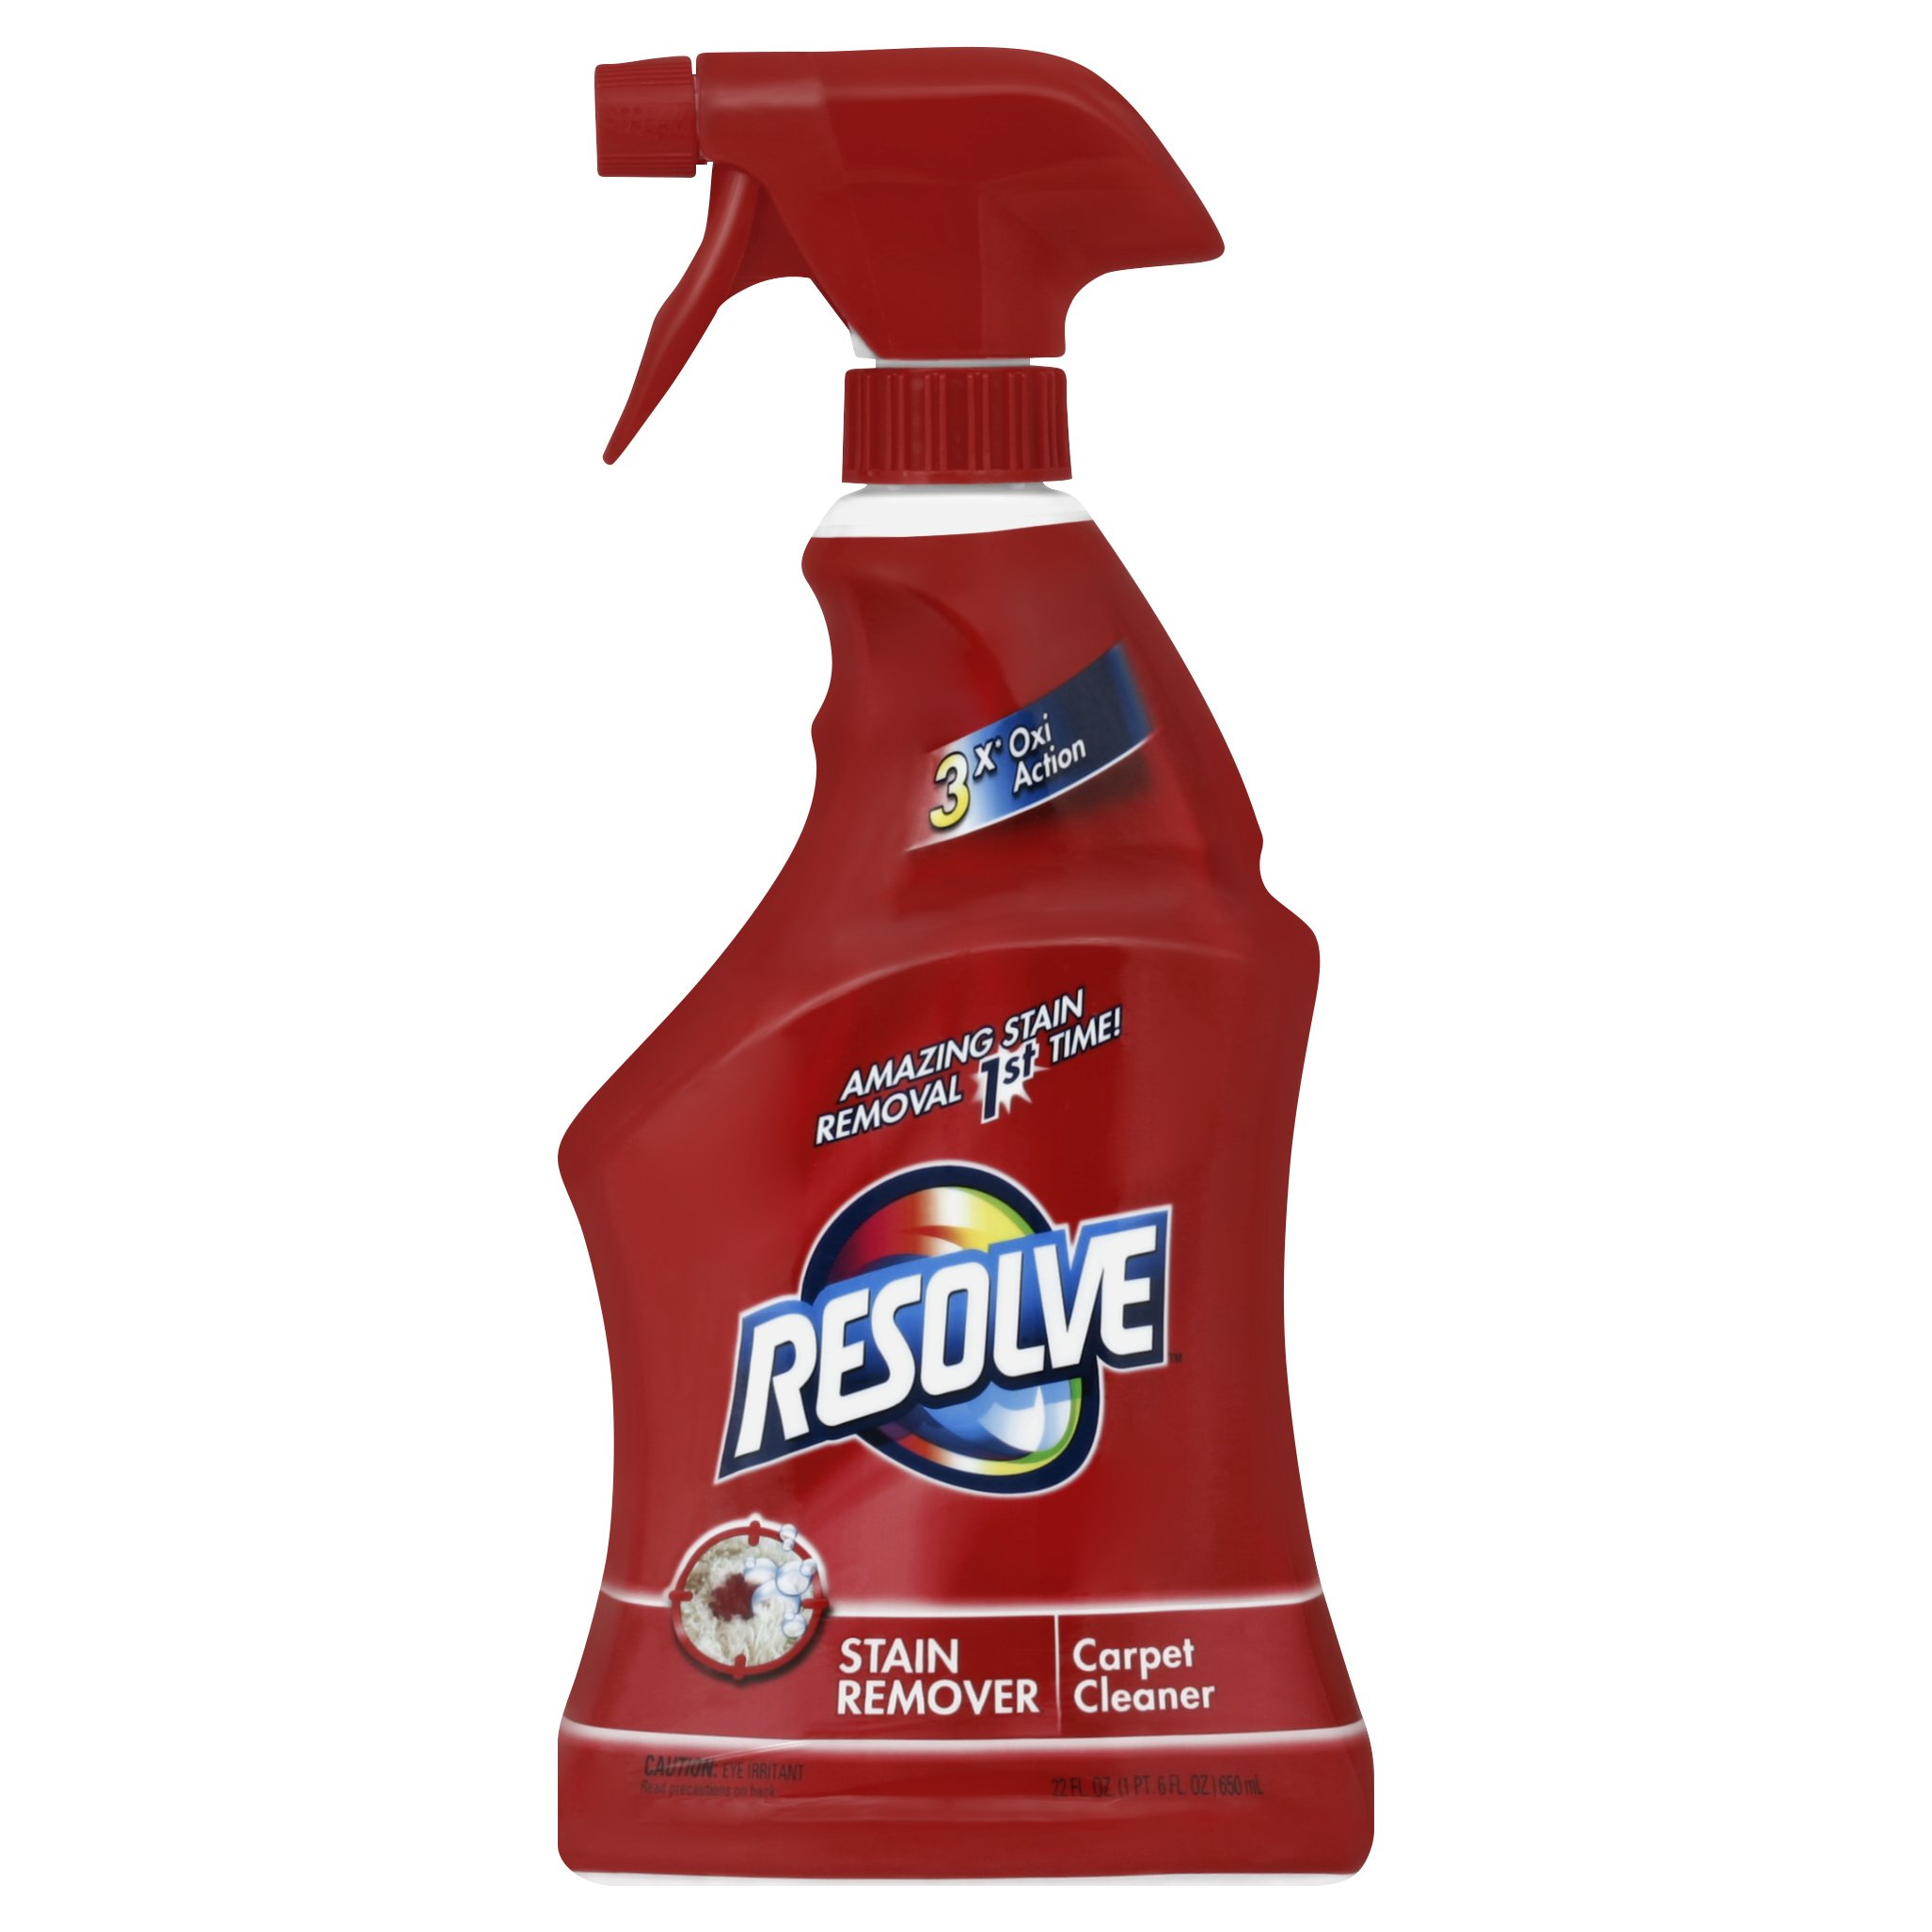 Resolve Carpet Cleaner with Triple Oxi Action Advanced Carpet Stain Remover, 22 oz (Pack of 12)